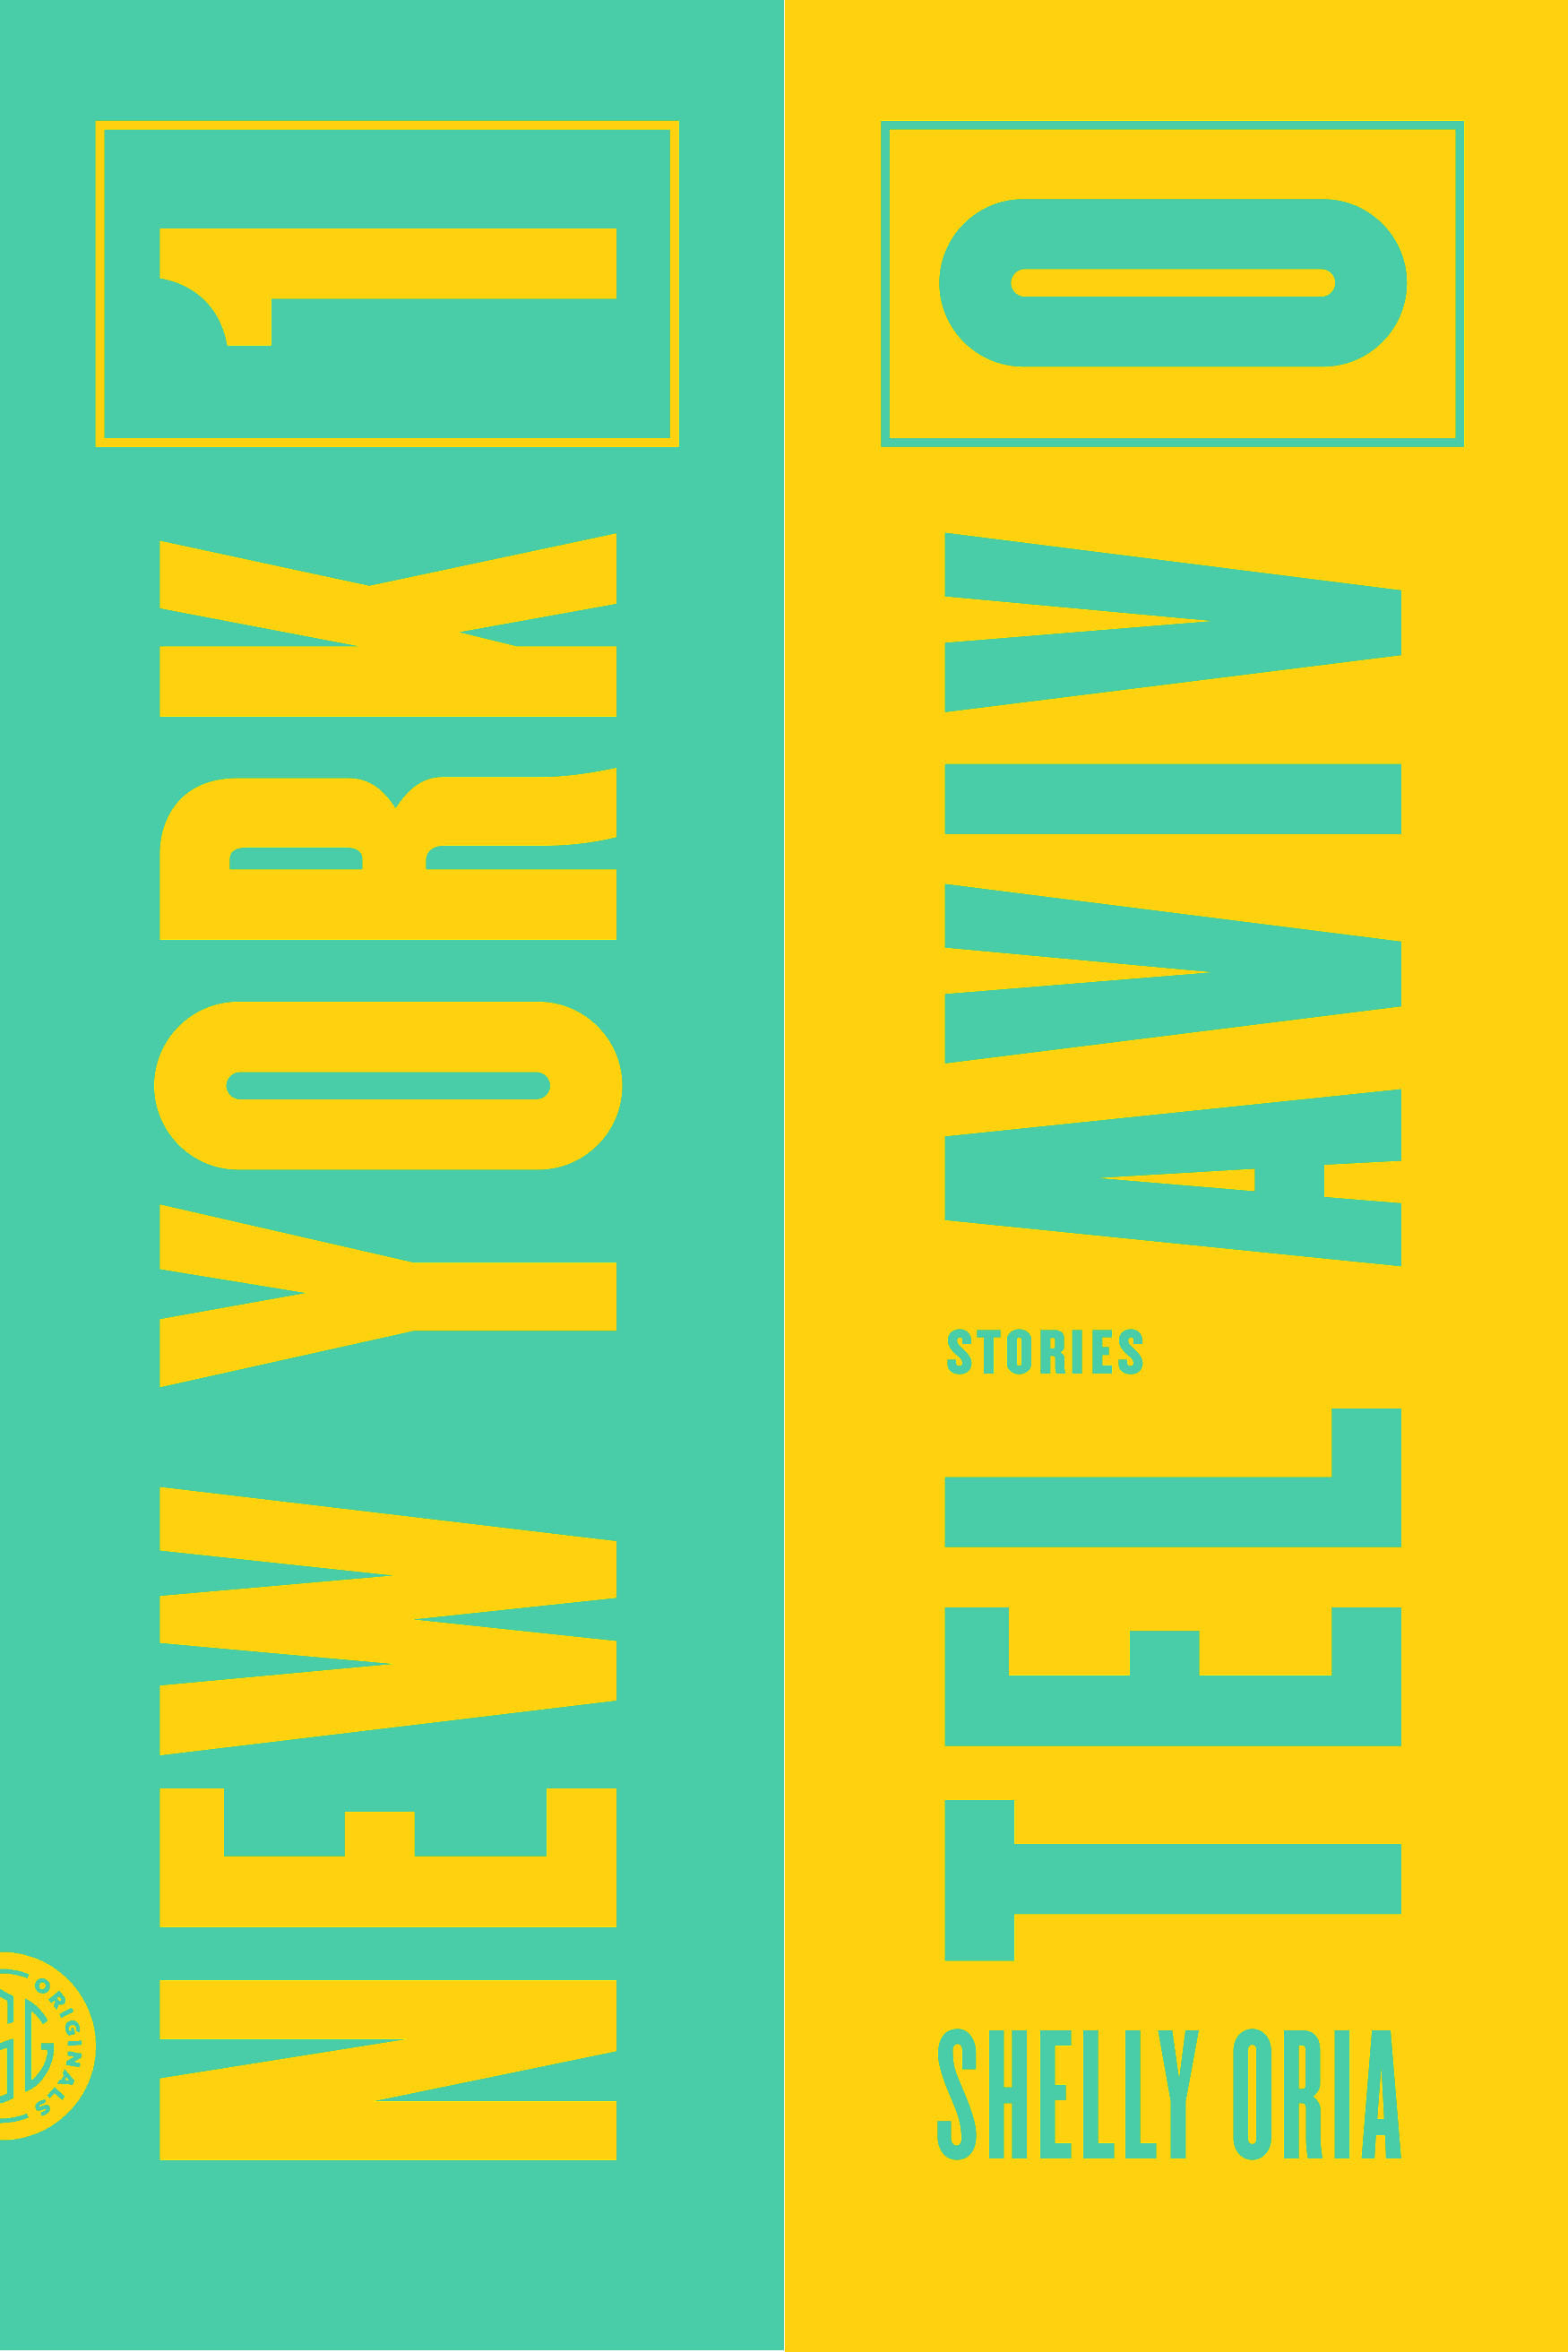 Book Launch: New York 1, Tel Aviv 0 by Shelly Oria, with Ben Greenman